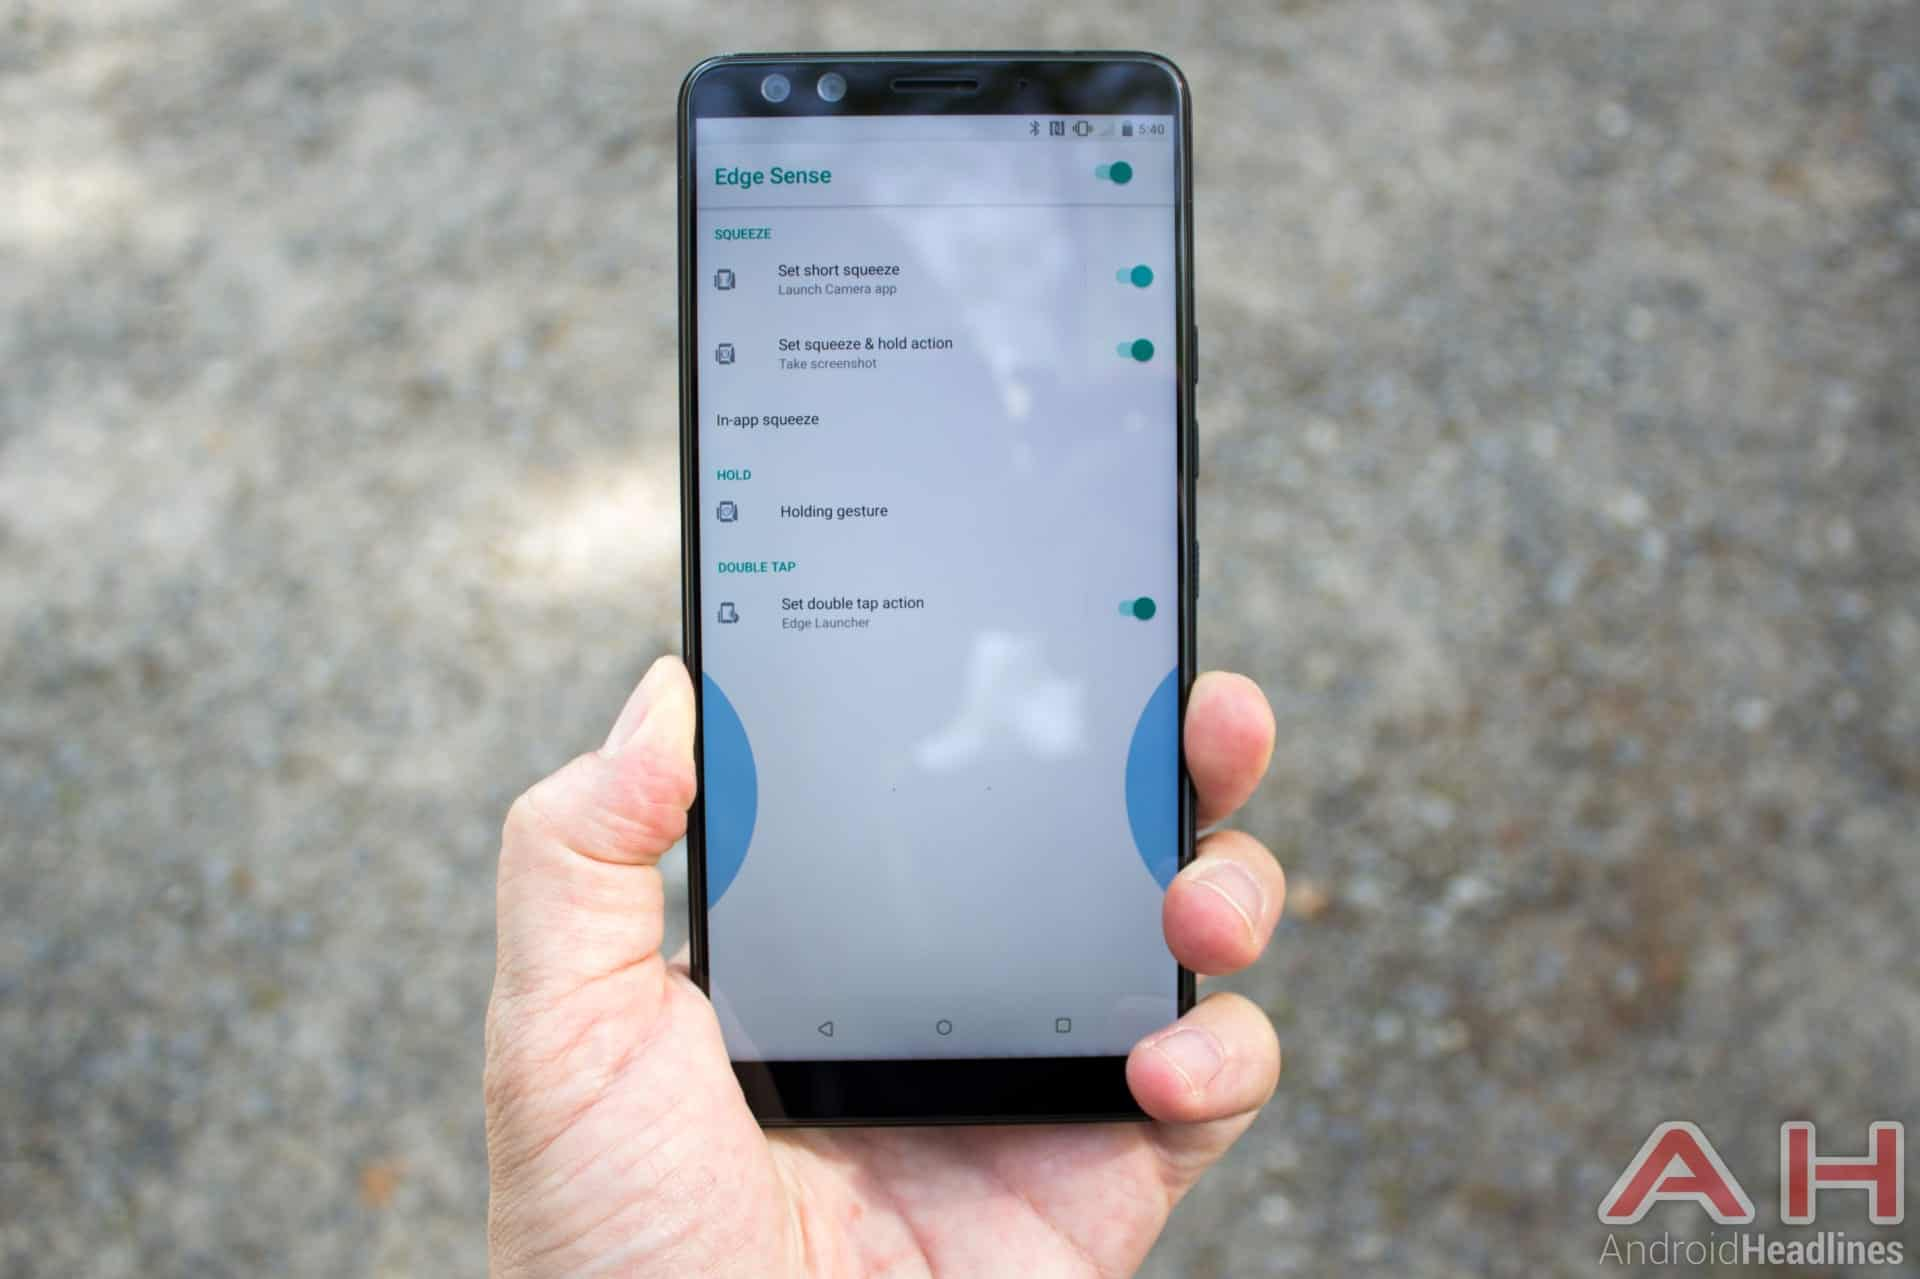 HTC U12 Plus AH NS 35 squeeze edge sense